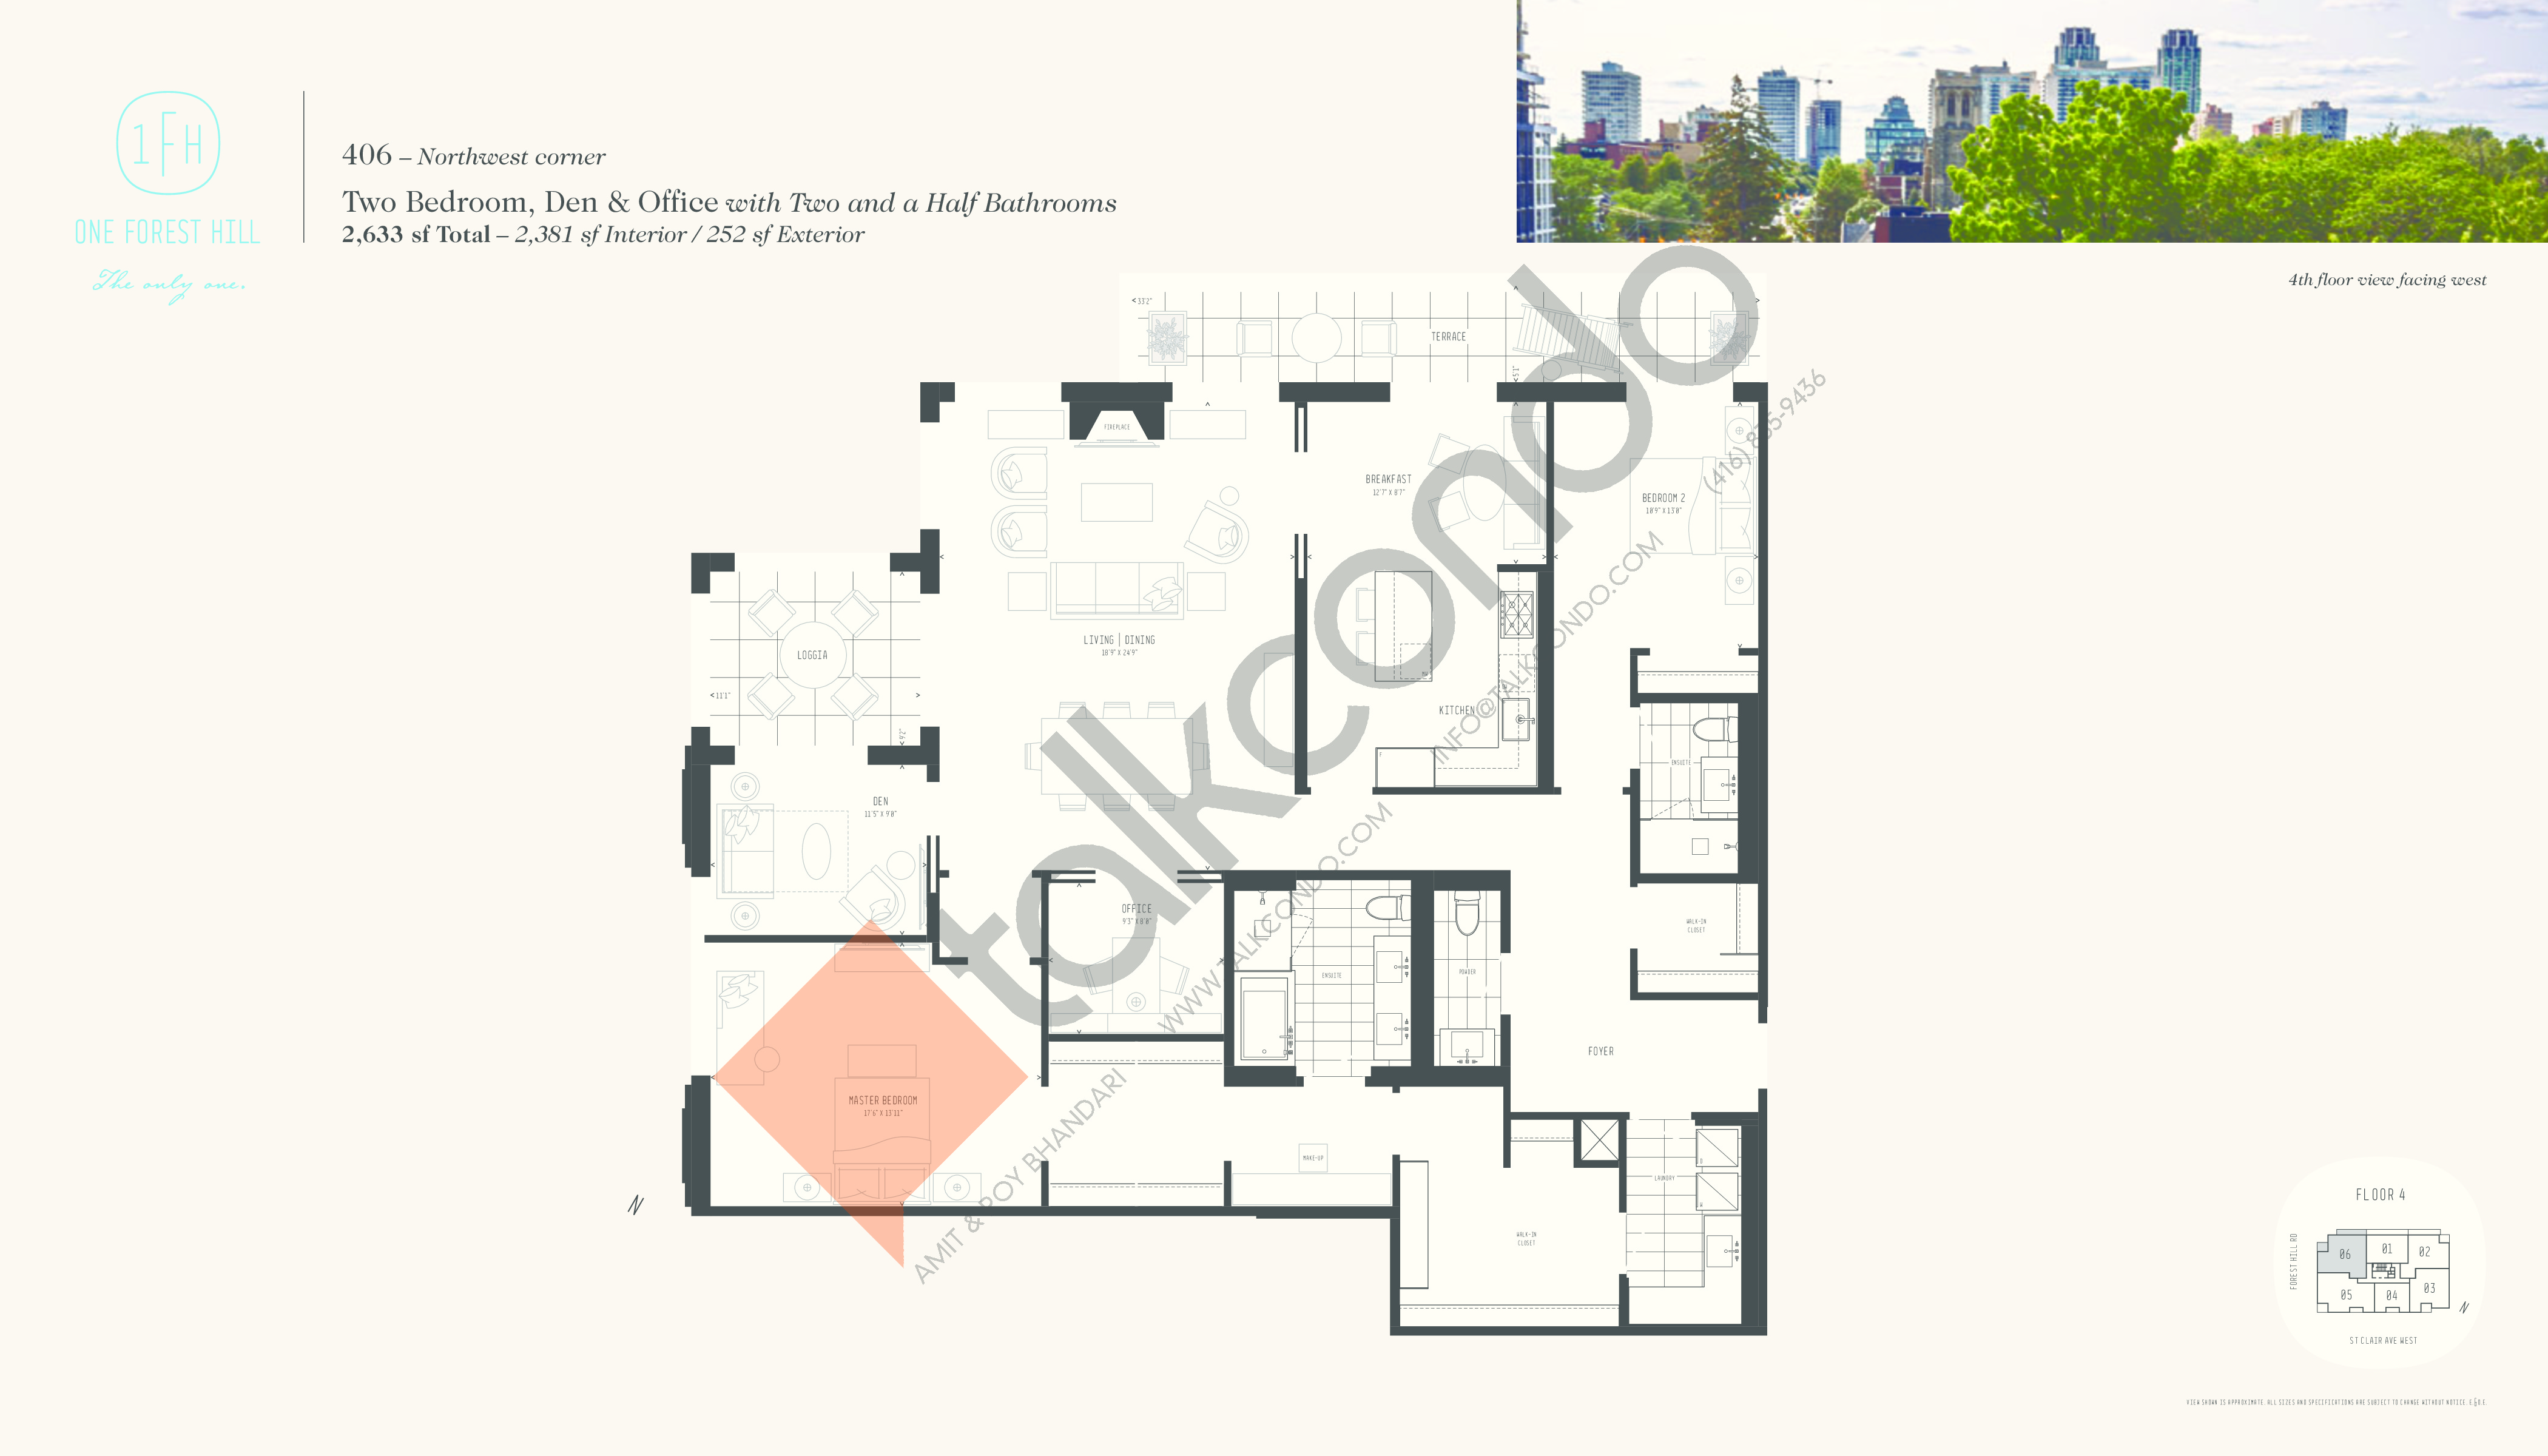 406 Floor Plan at One Forest Hill Condos - 2381 sq.ft